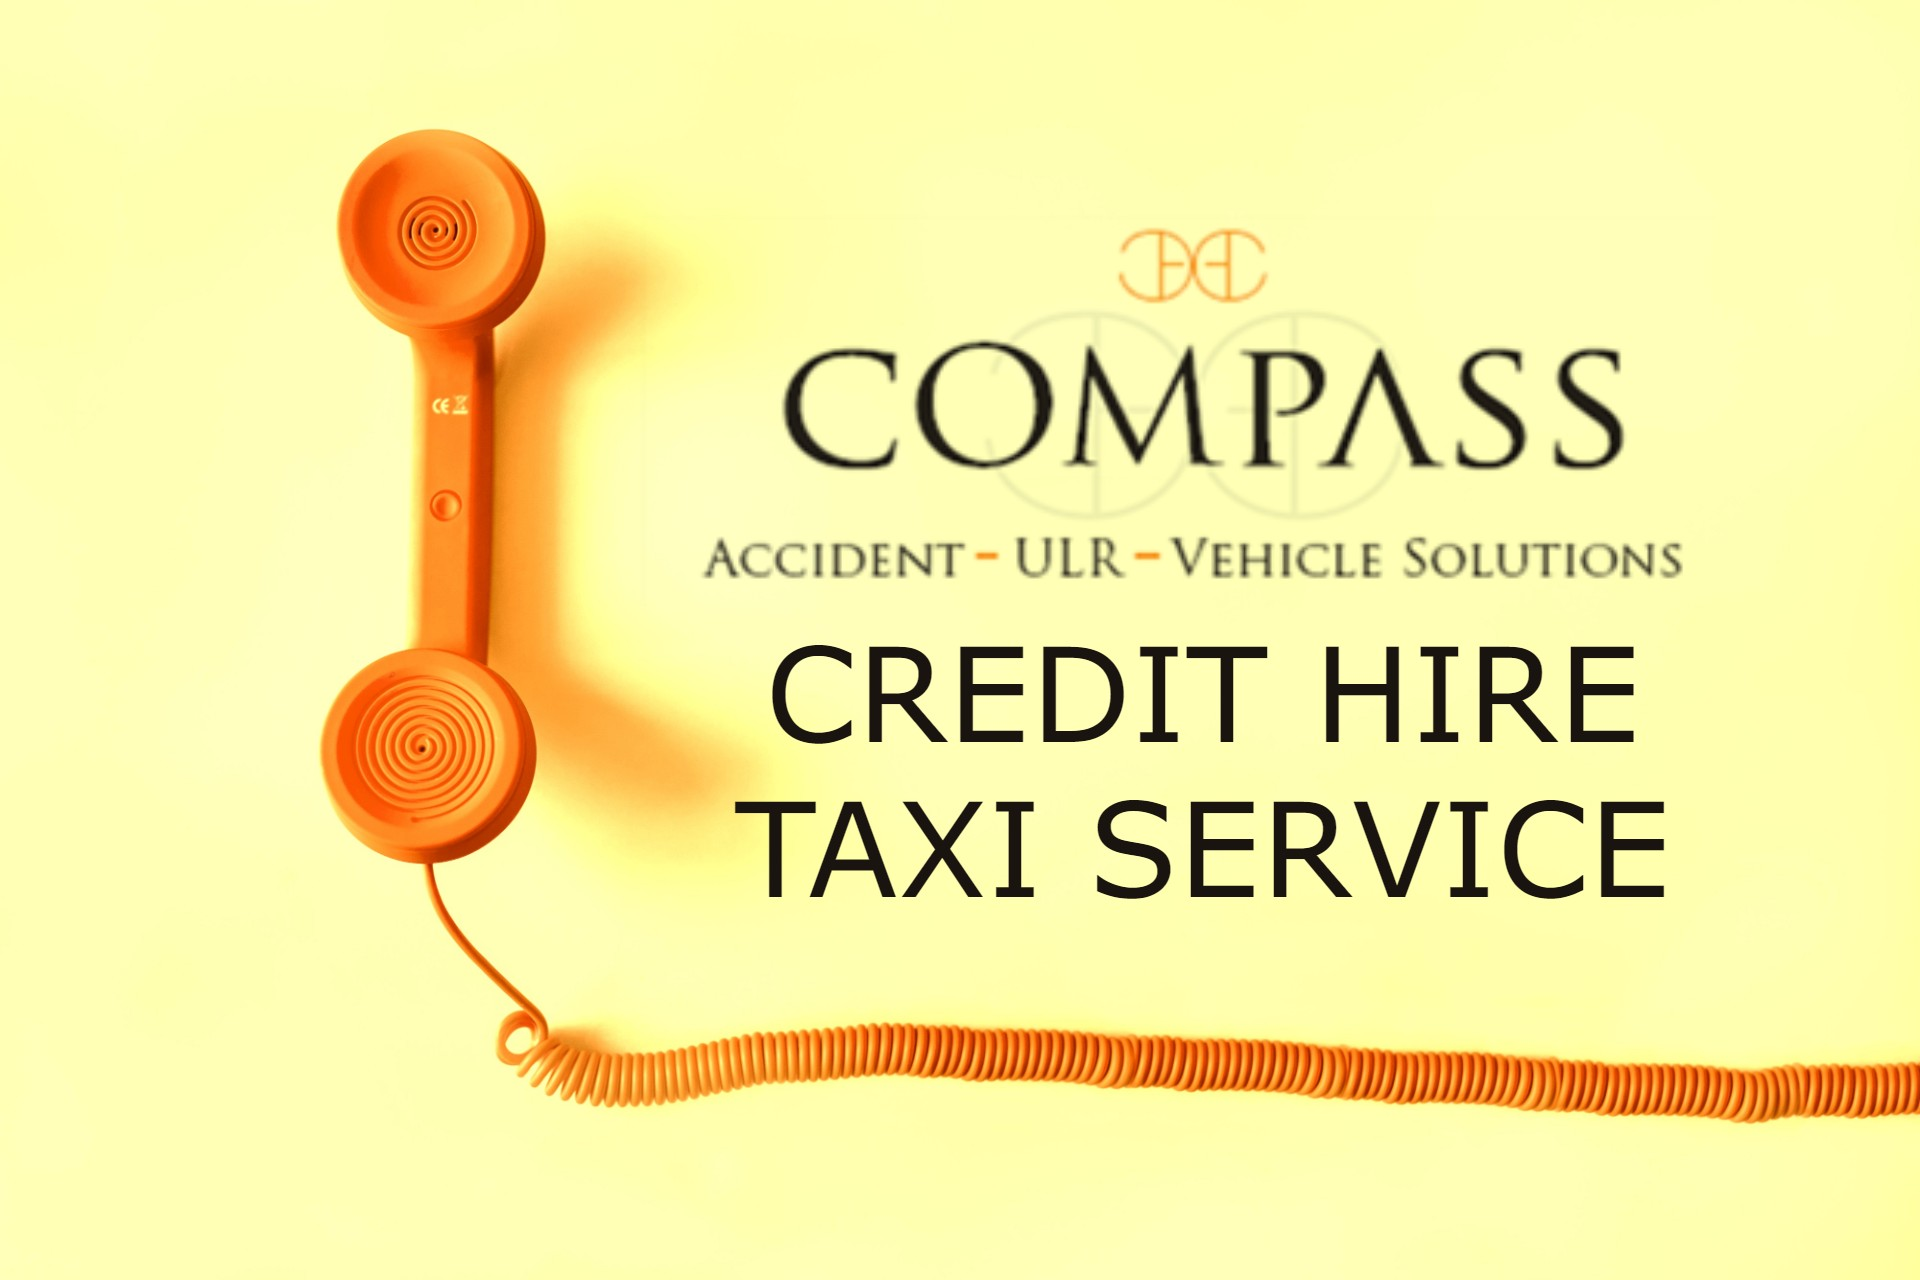 Credit hire taxi companies replacement taxi after non fault accident, taxi credit hire